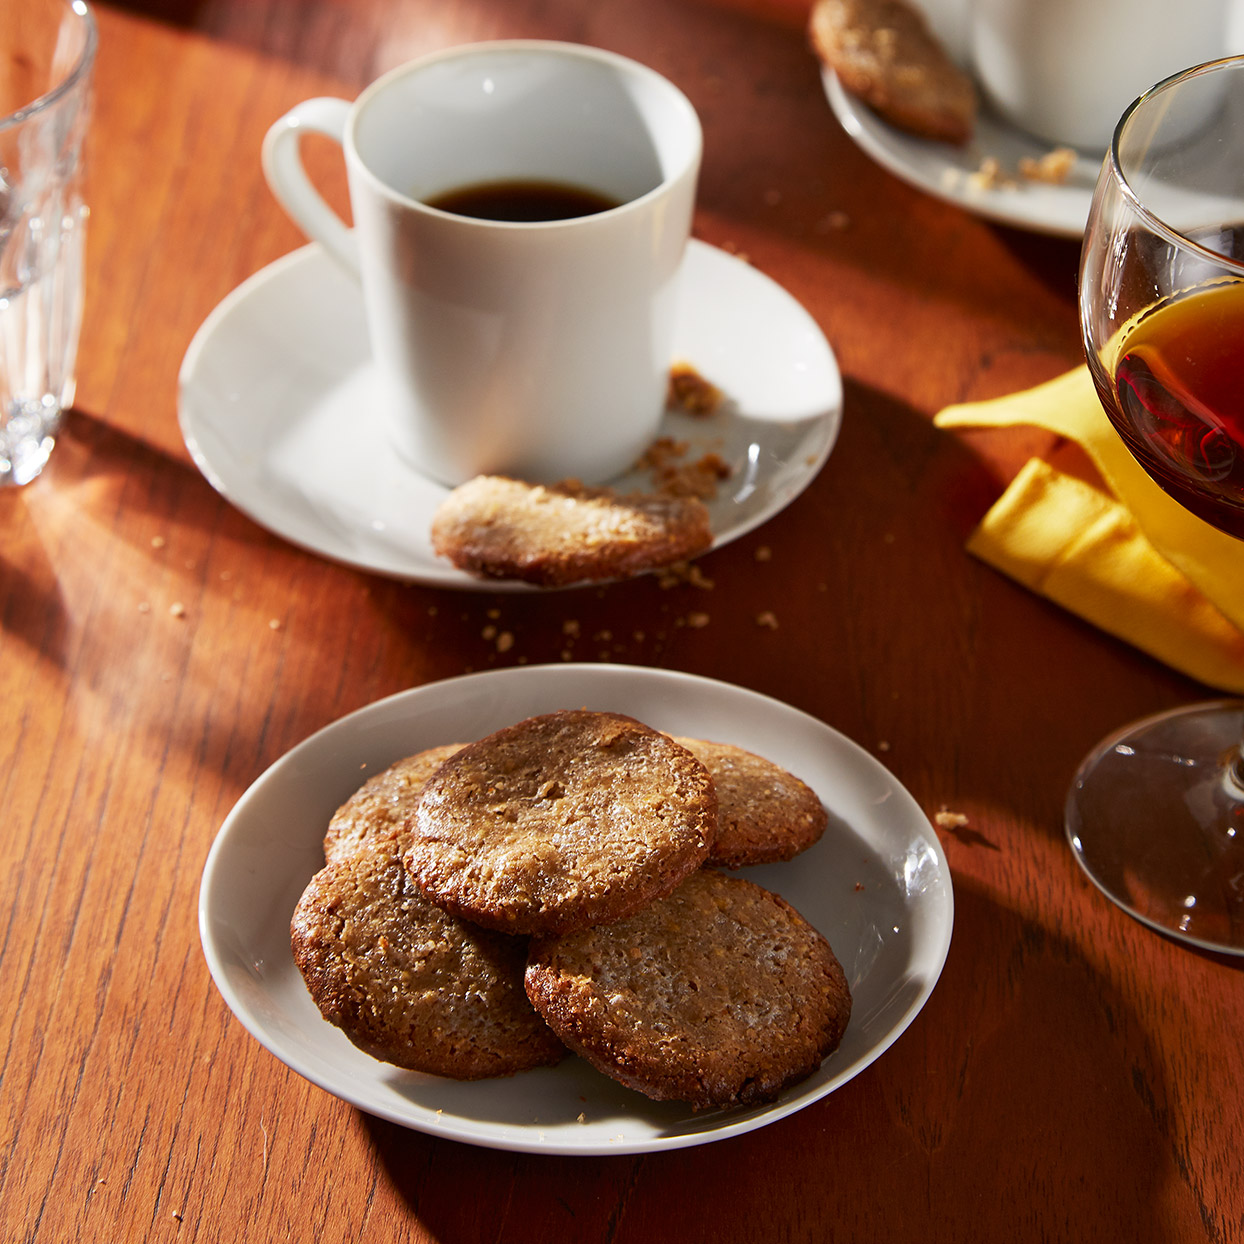 The intense blend of spices in these cookies is a tip of the hat to Venice's history as a conduit for the spice trade between Europe and the Far East. Source: EatingWell Magazine, March 2020